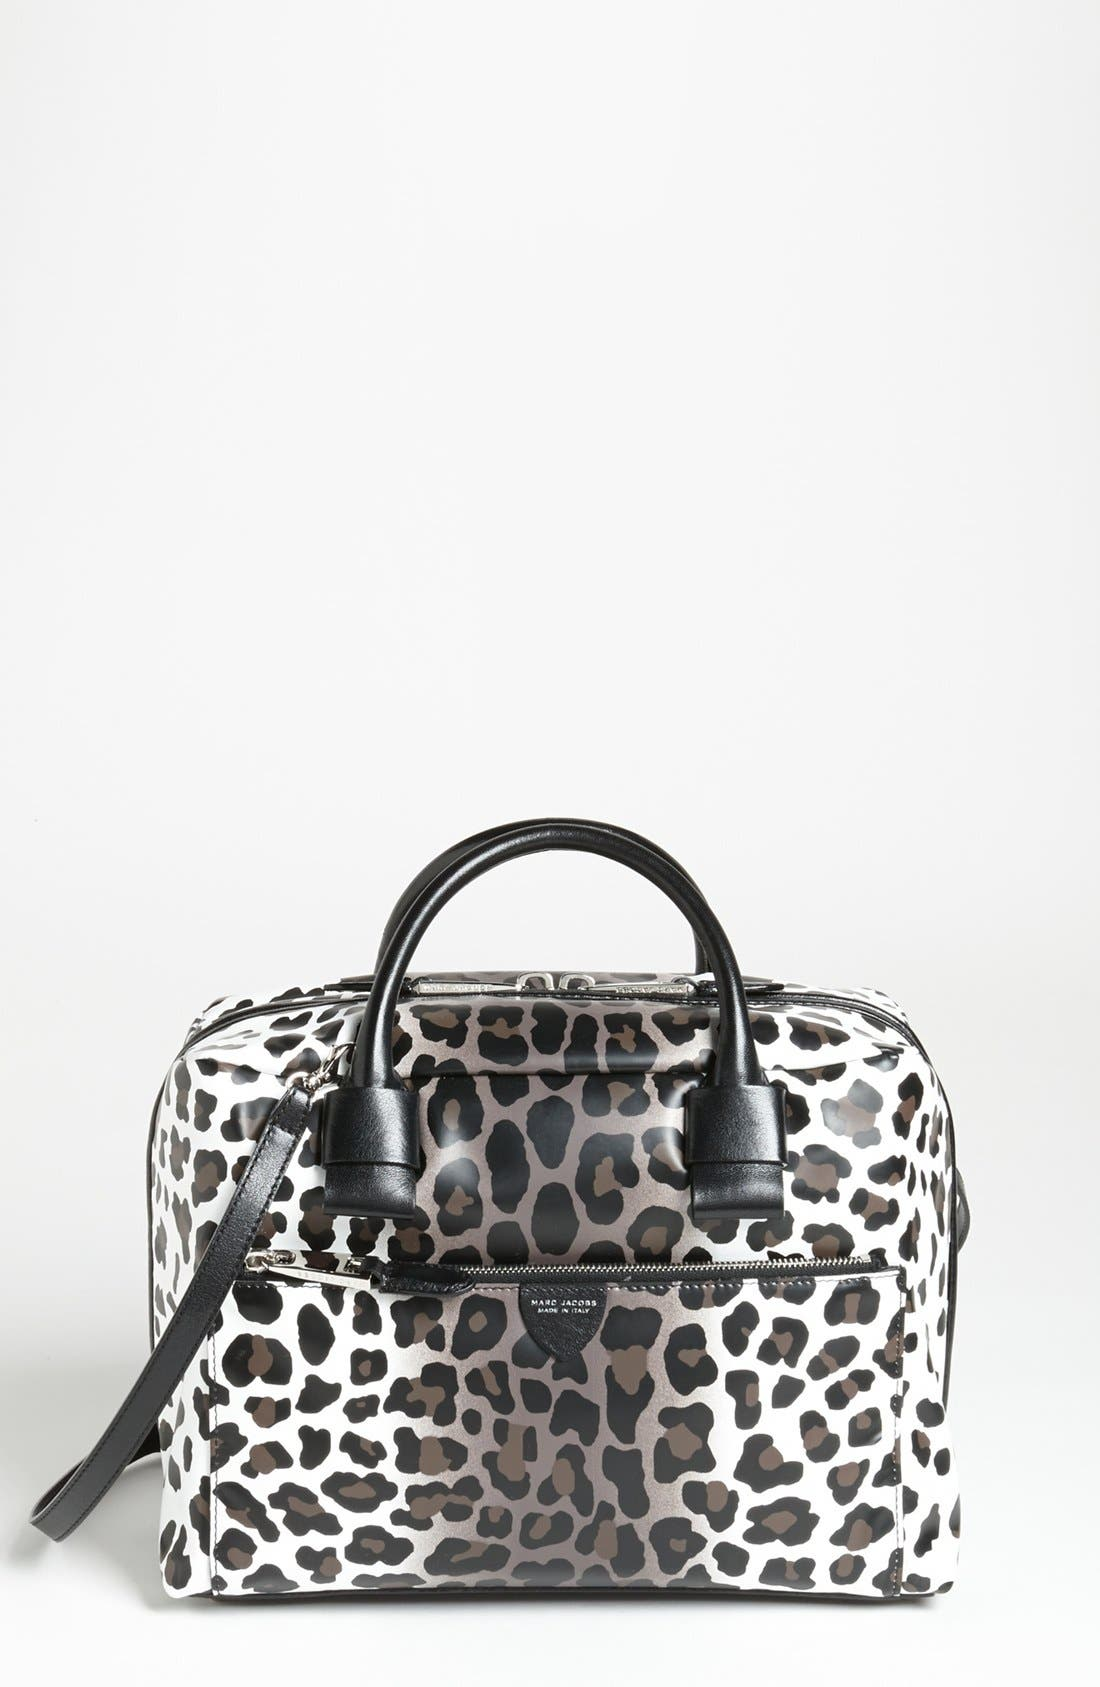 Main Image - MARC JACOBS 'Small Antonia - Leopard' Leather Satchel